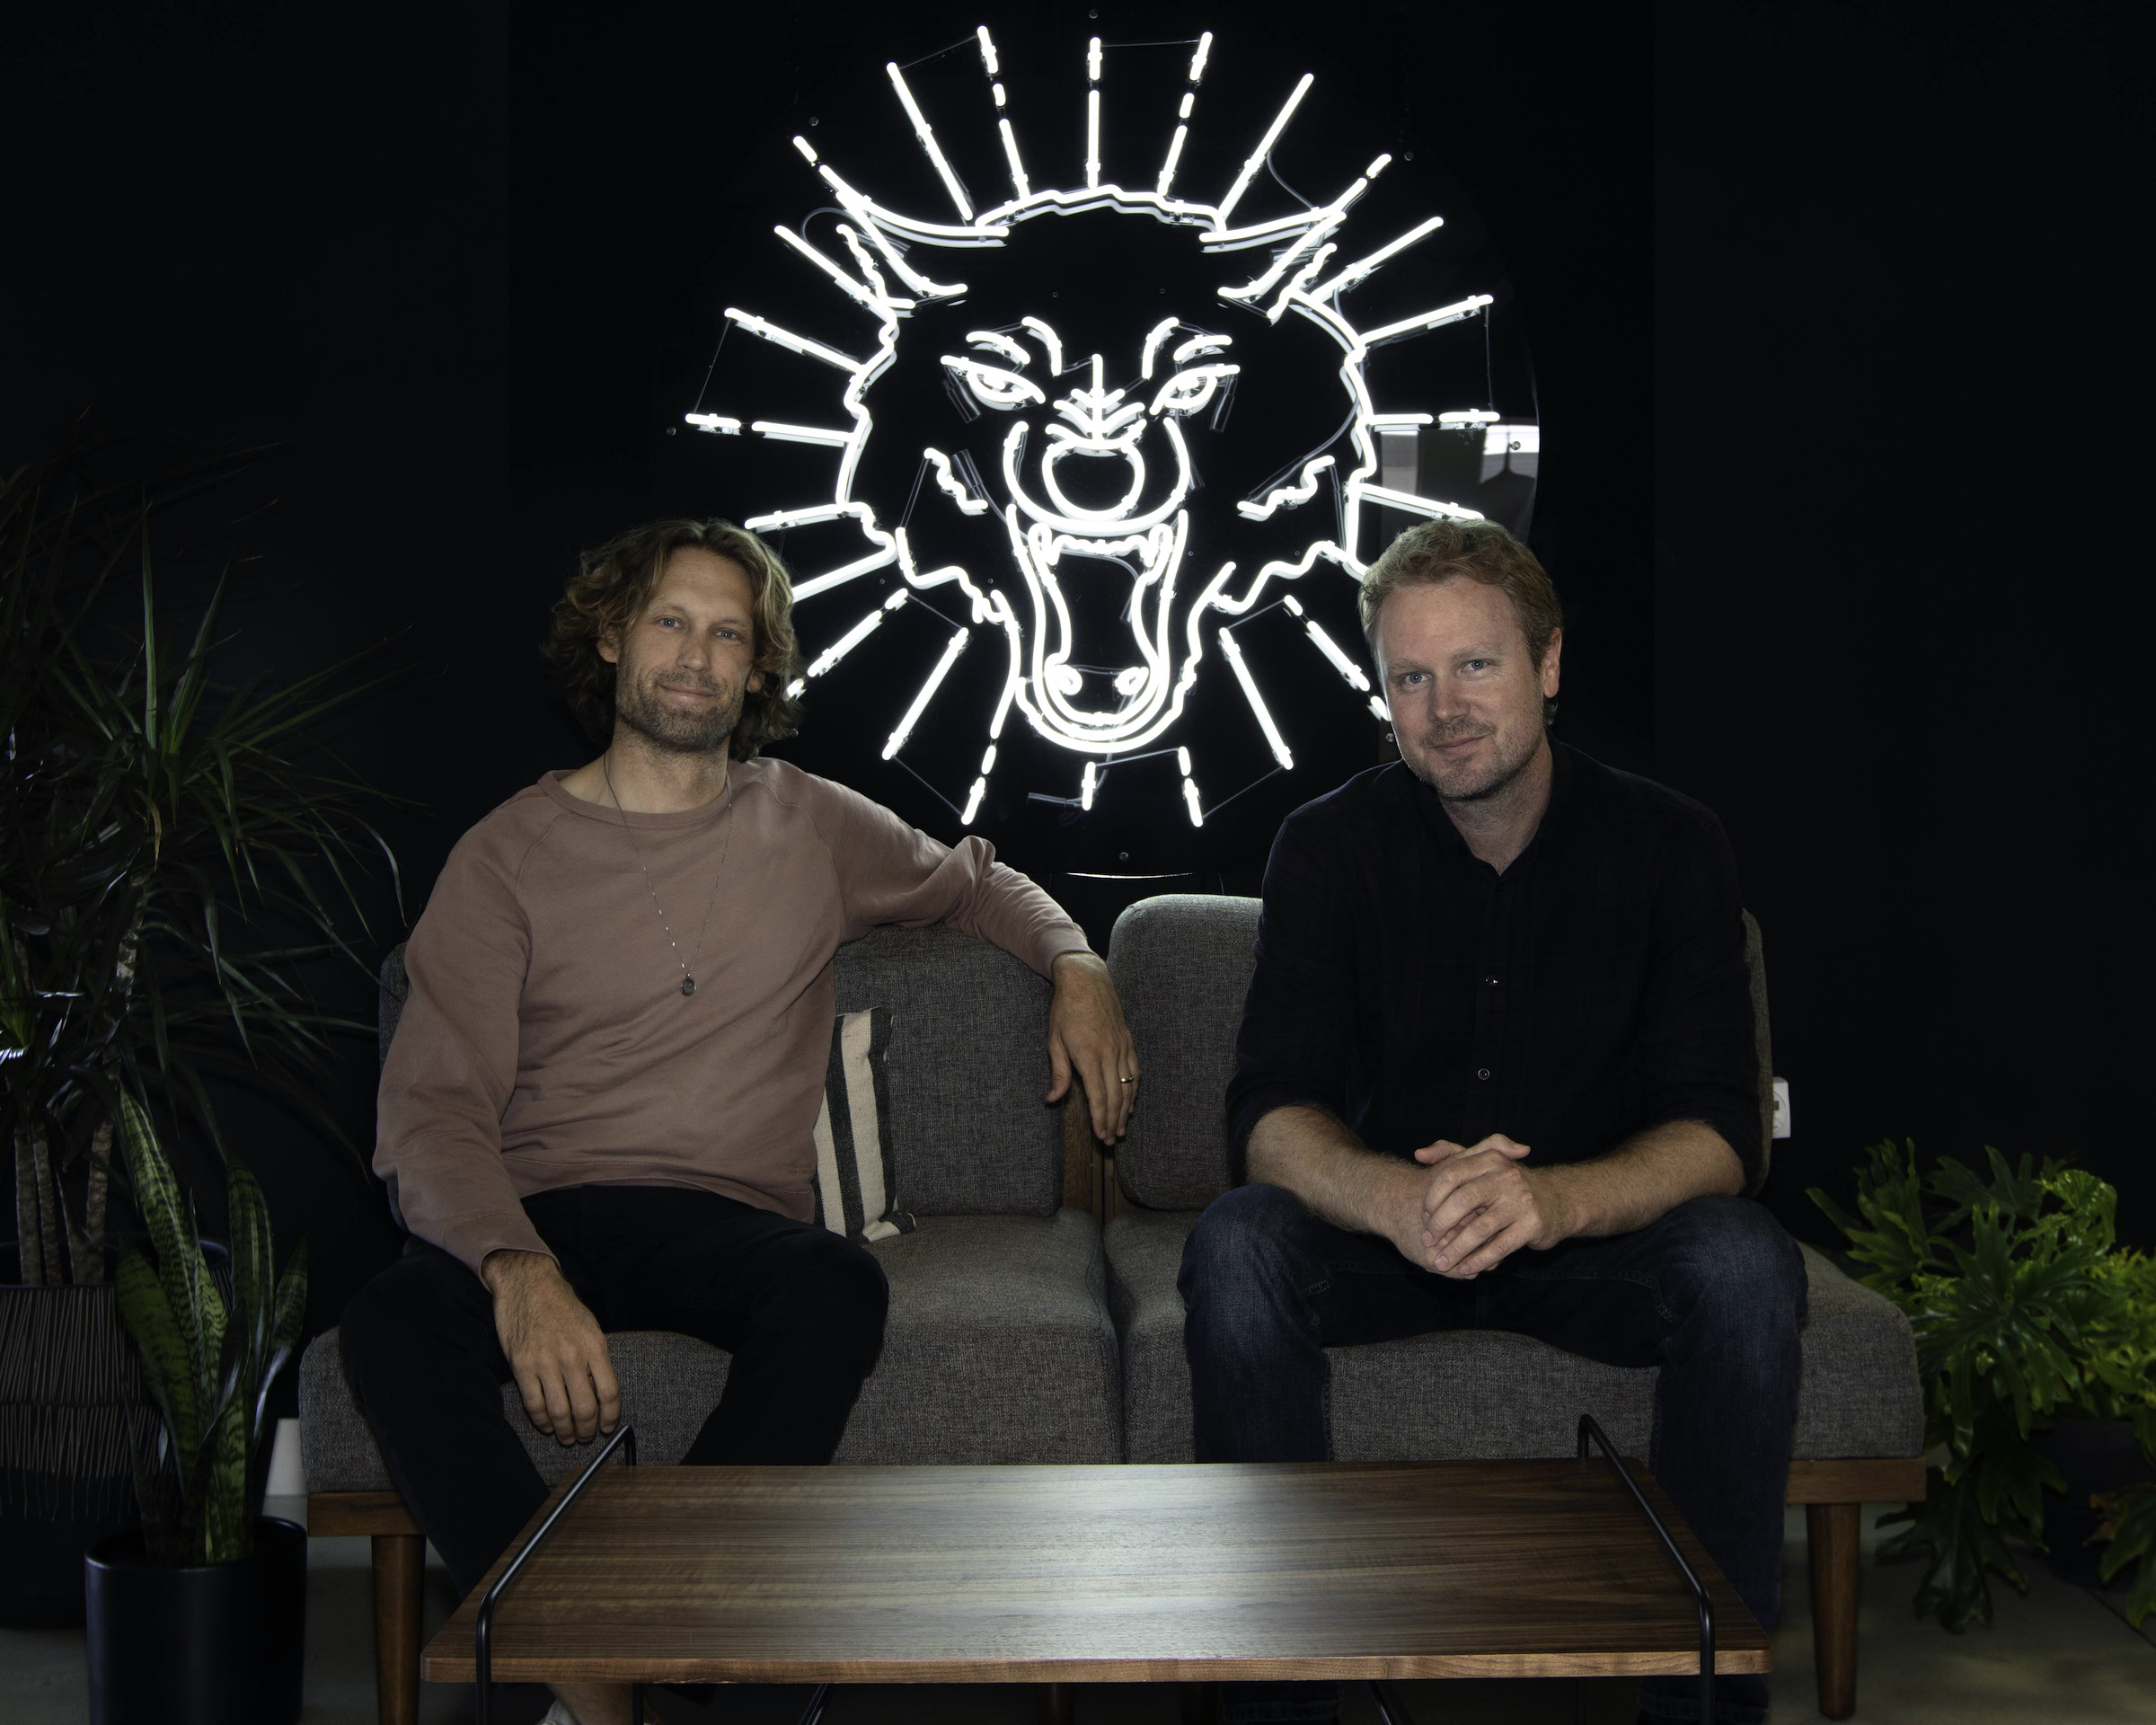 Wolfgang Hires 2 Creative Directors Away from TBWA\Chiat\Day